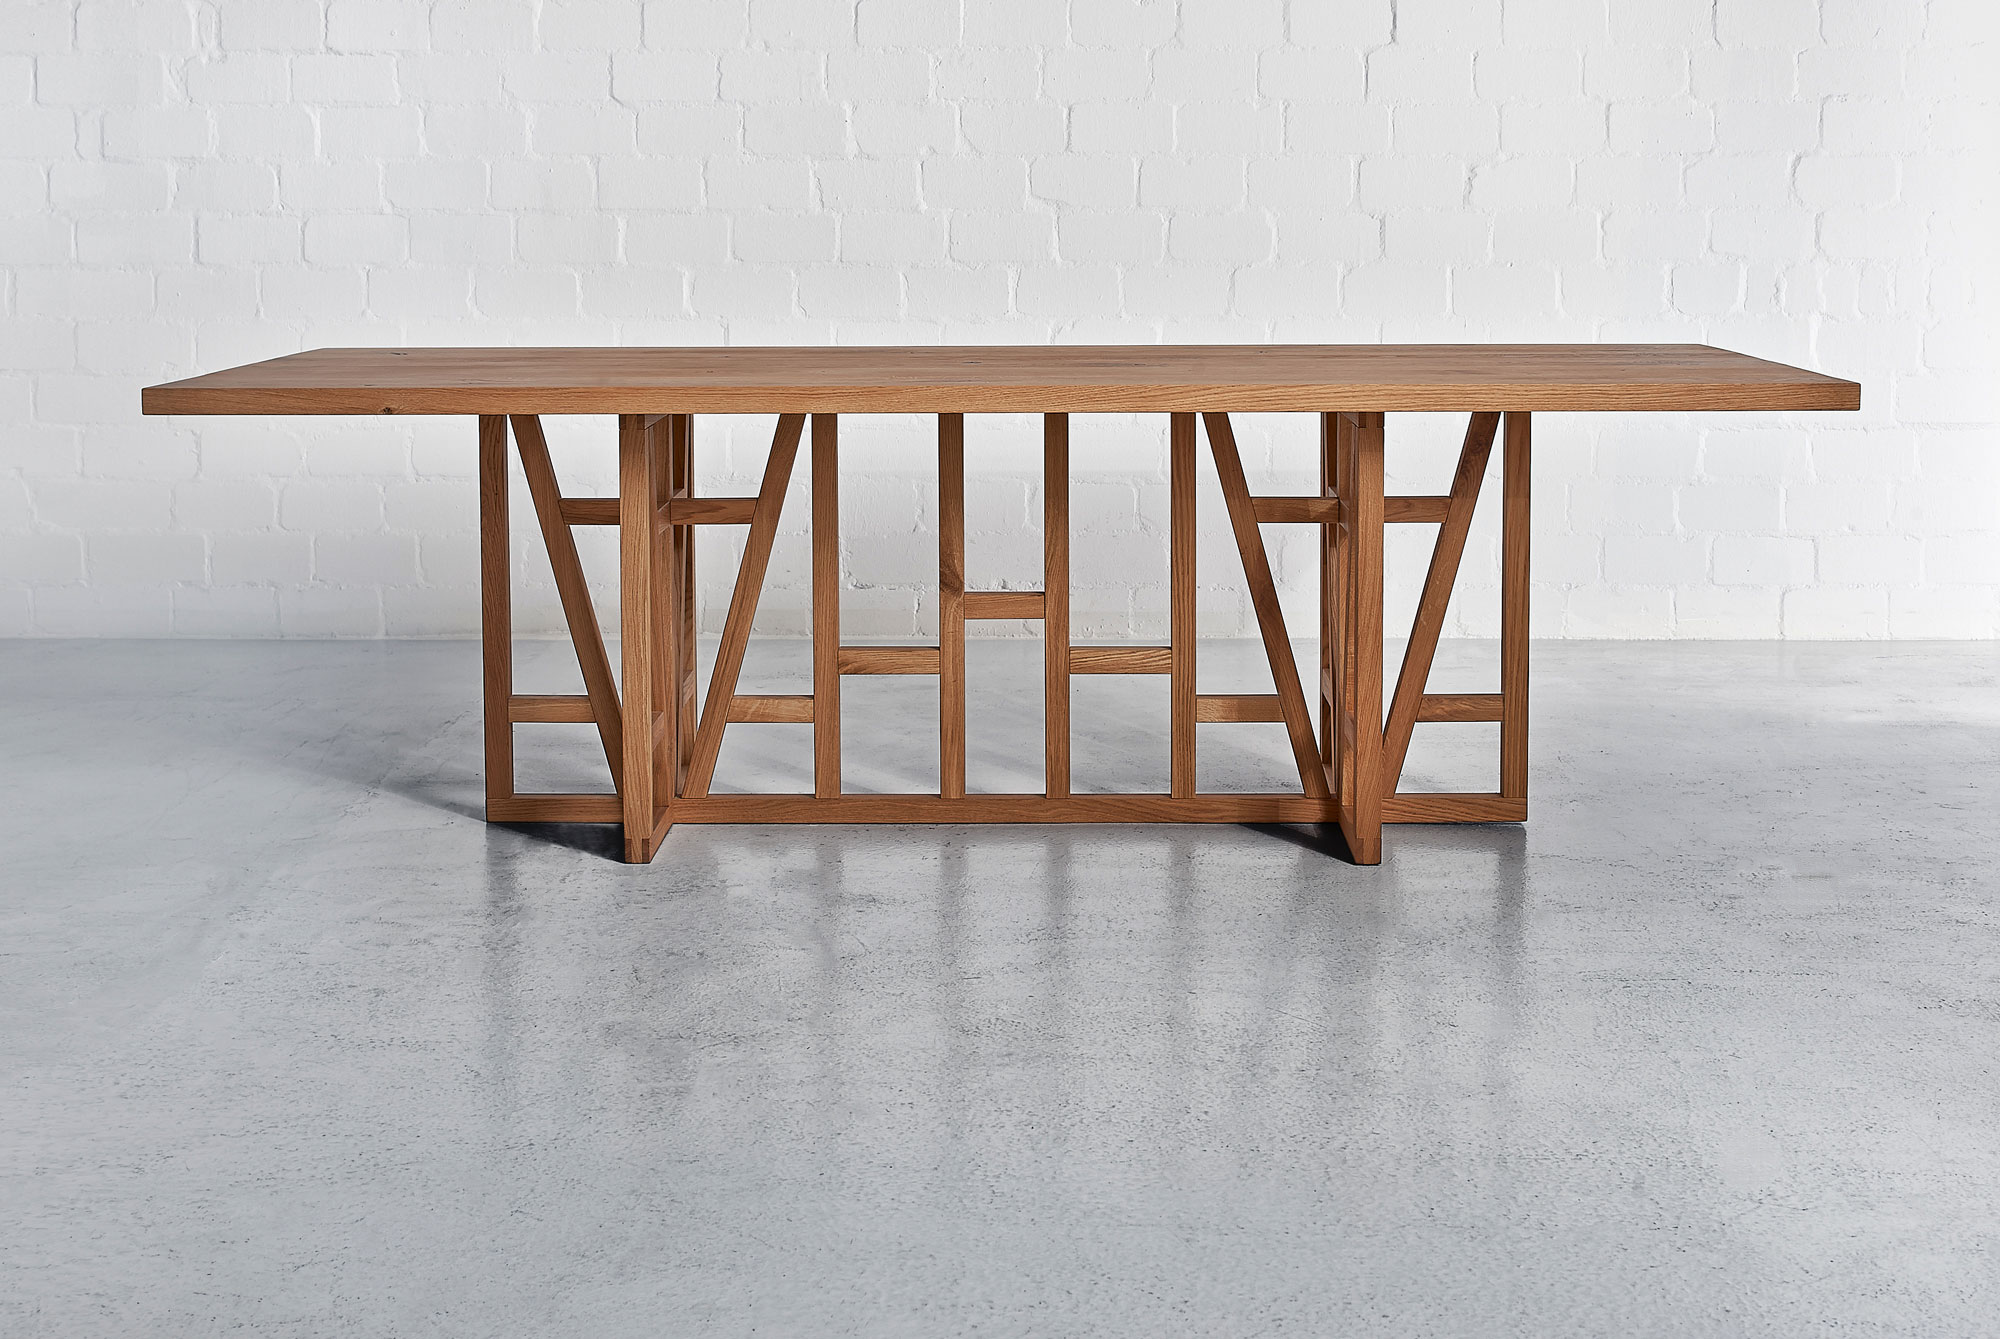 Designer Solid Wood Table FACHWERK 0039g custom made in solid wood by vitamin design